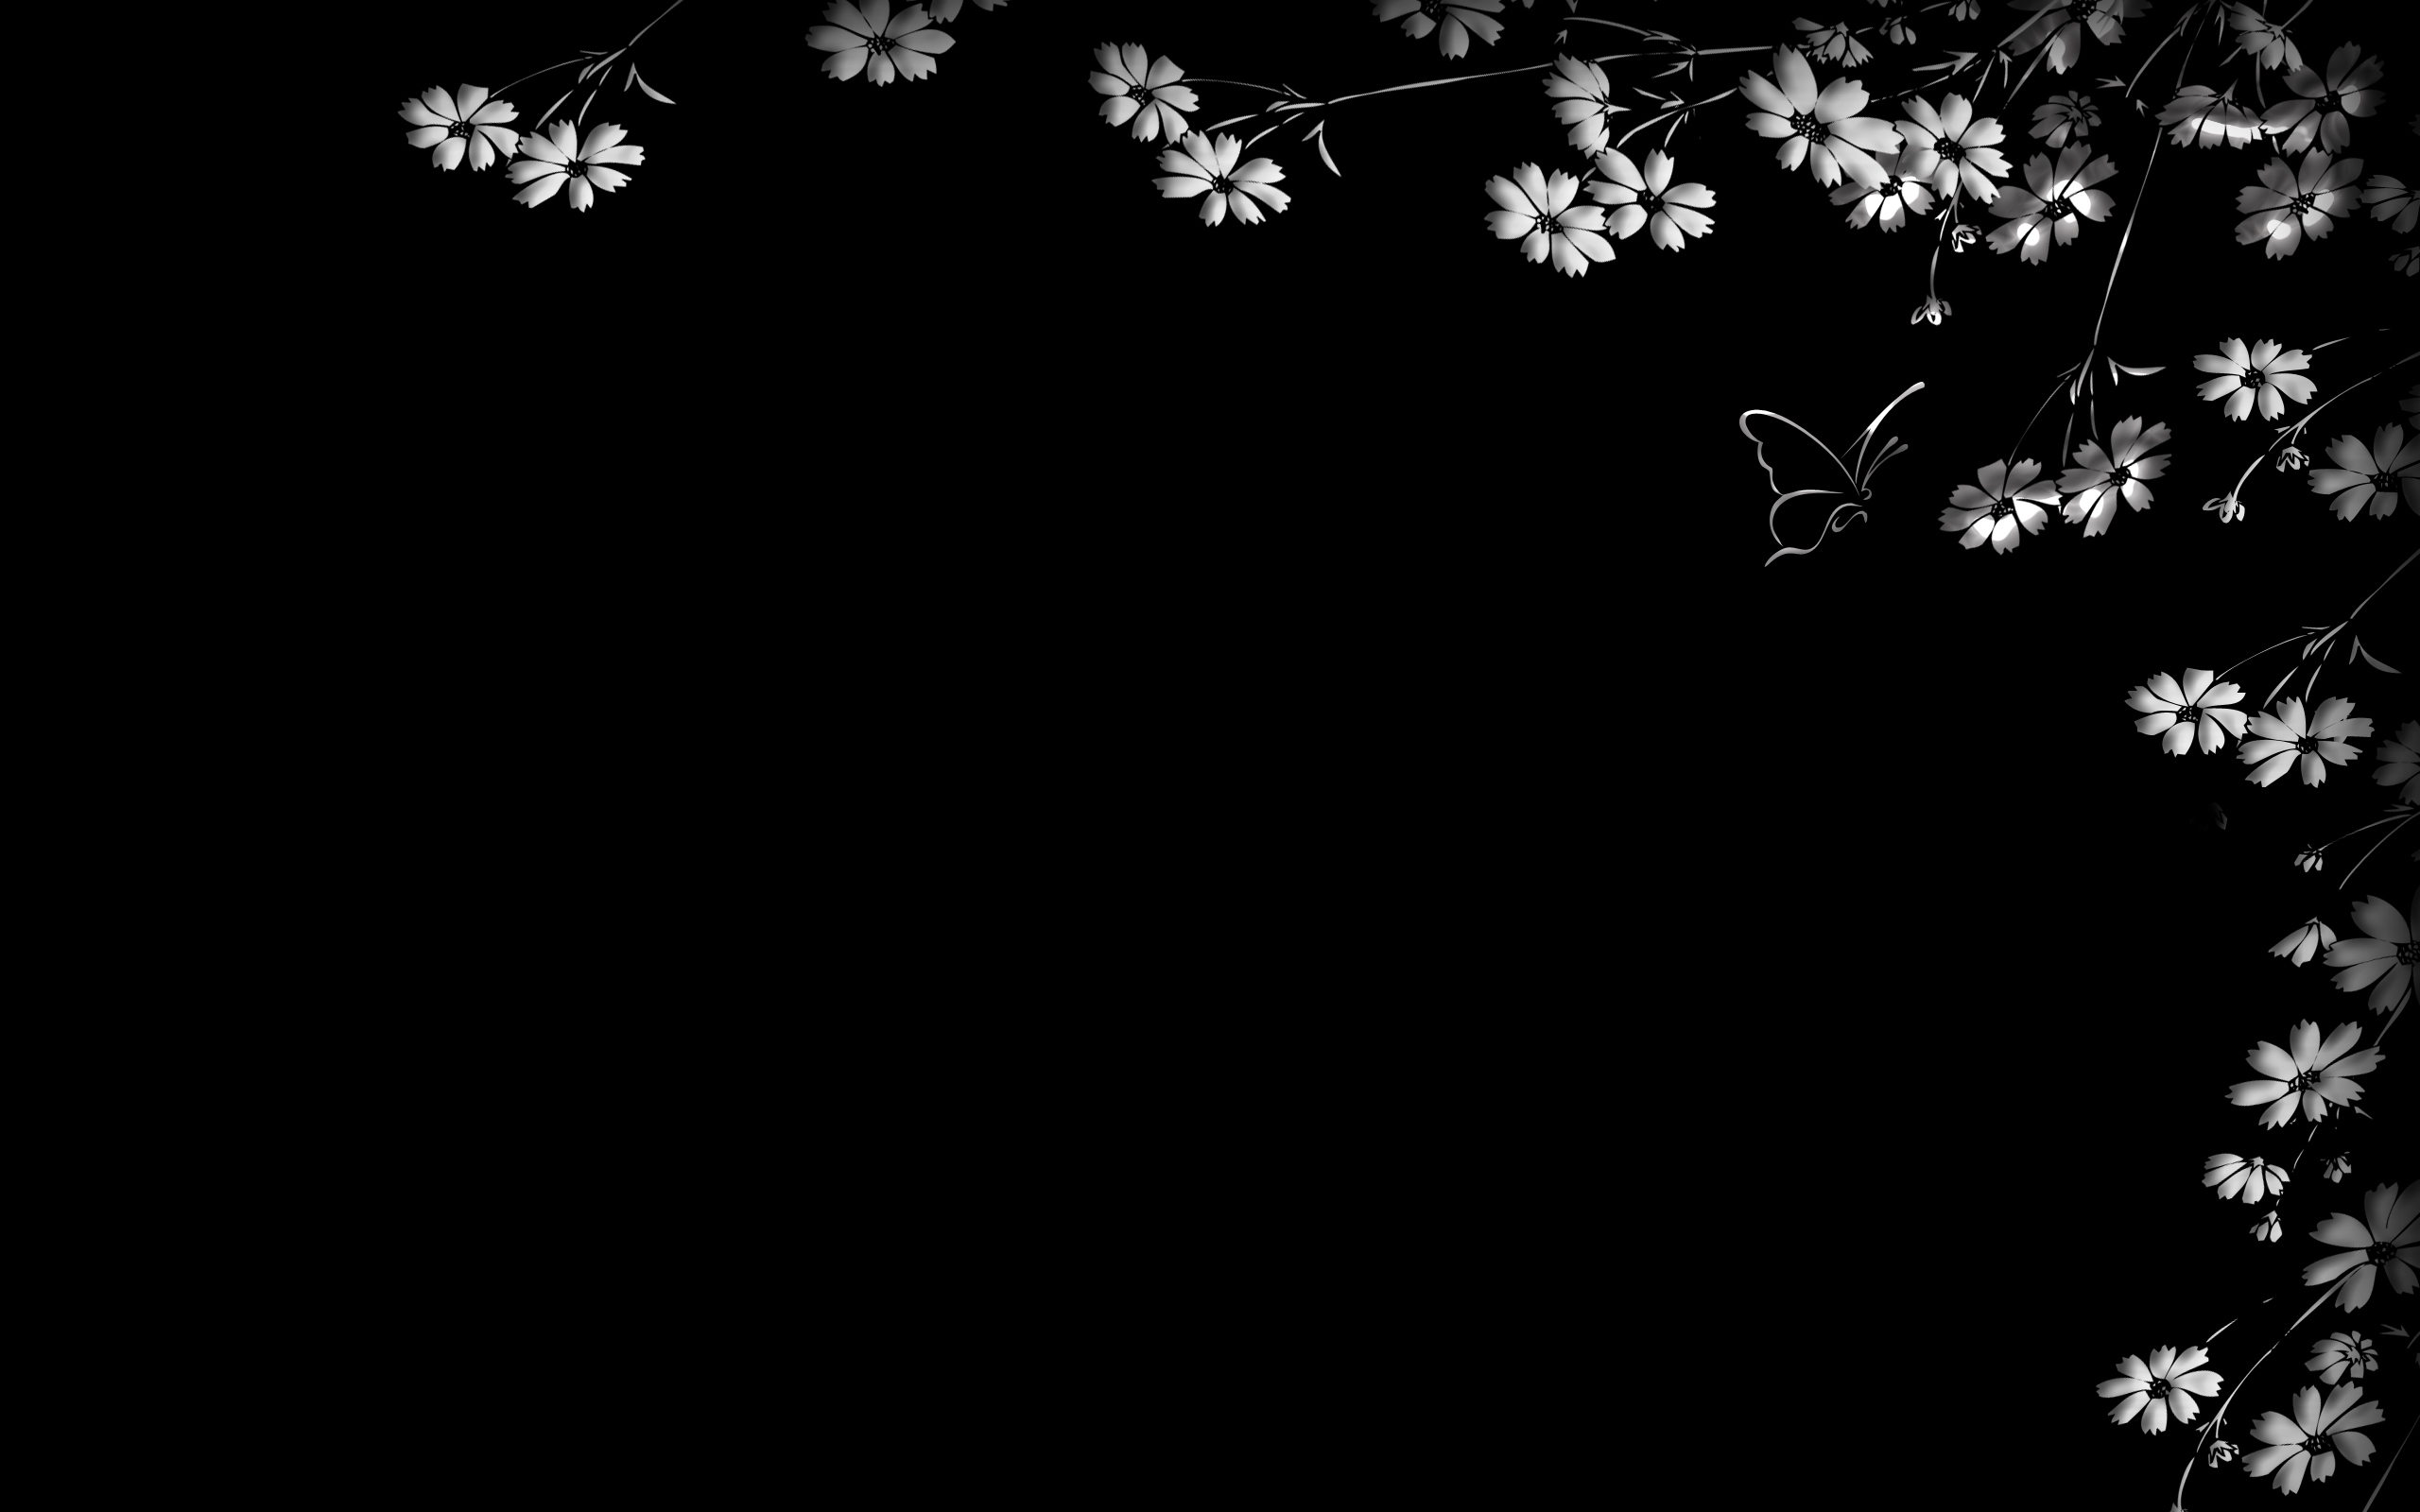 Fantasy Wallpaper Download. Fantasy Wallpaper Download Fantasy Wallpaper. Nature Flowers Black and white ...